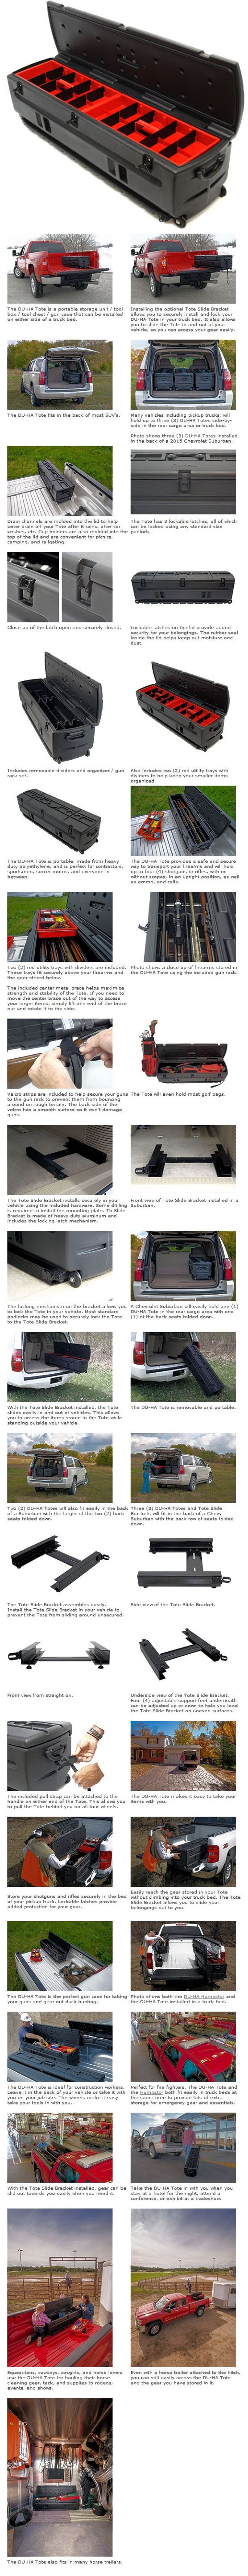 Check out our truly amazing Portable All-In-One Tool Box that serves as a storage unit; tool box; and a gun case. This truly unique and versatile tool box is a must have item for any Pickup or SUV! $329.00